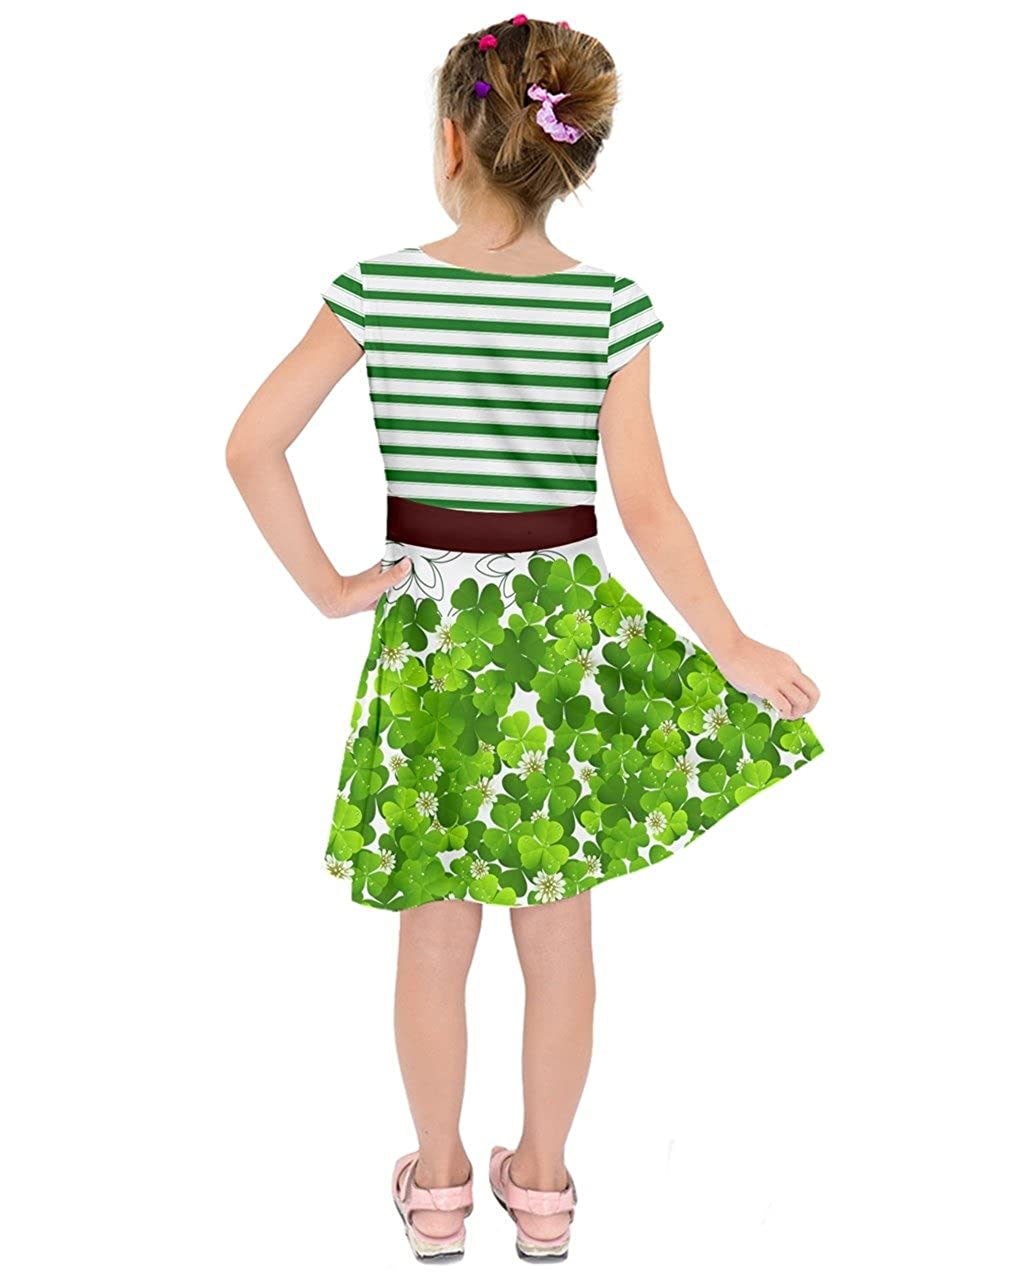 ecf8ffe4e2bb3 Amazon.com: PattyCandy Daddy's and Mommy's Lucky Charm Shamrock Toddler  Girl's Short Sleeve Dress Sizes for 2-13 Years: Clothing